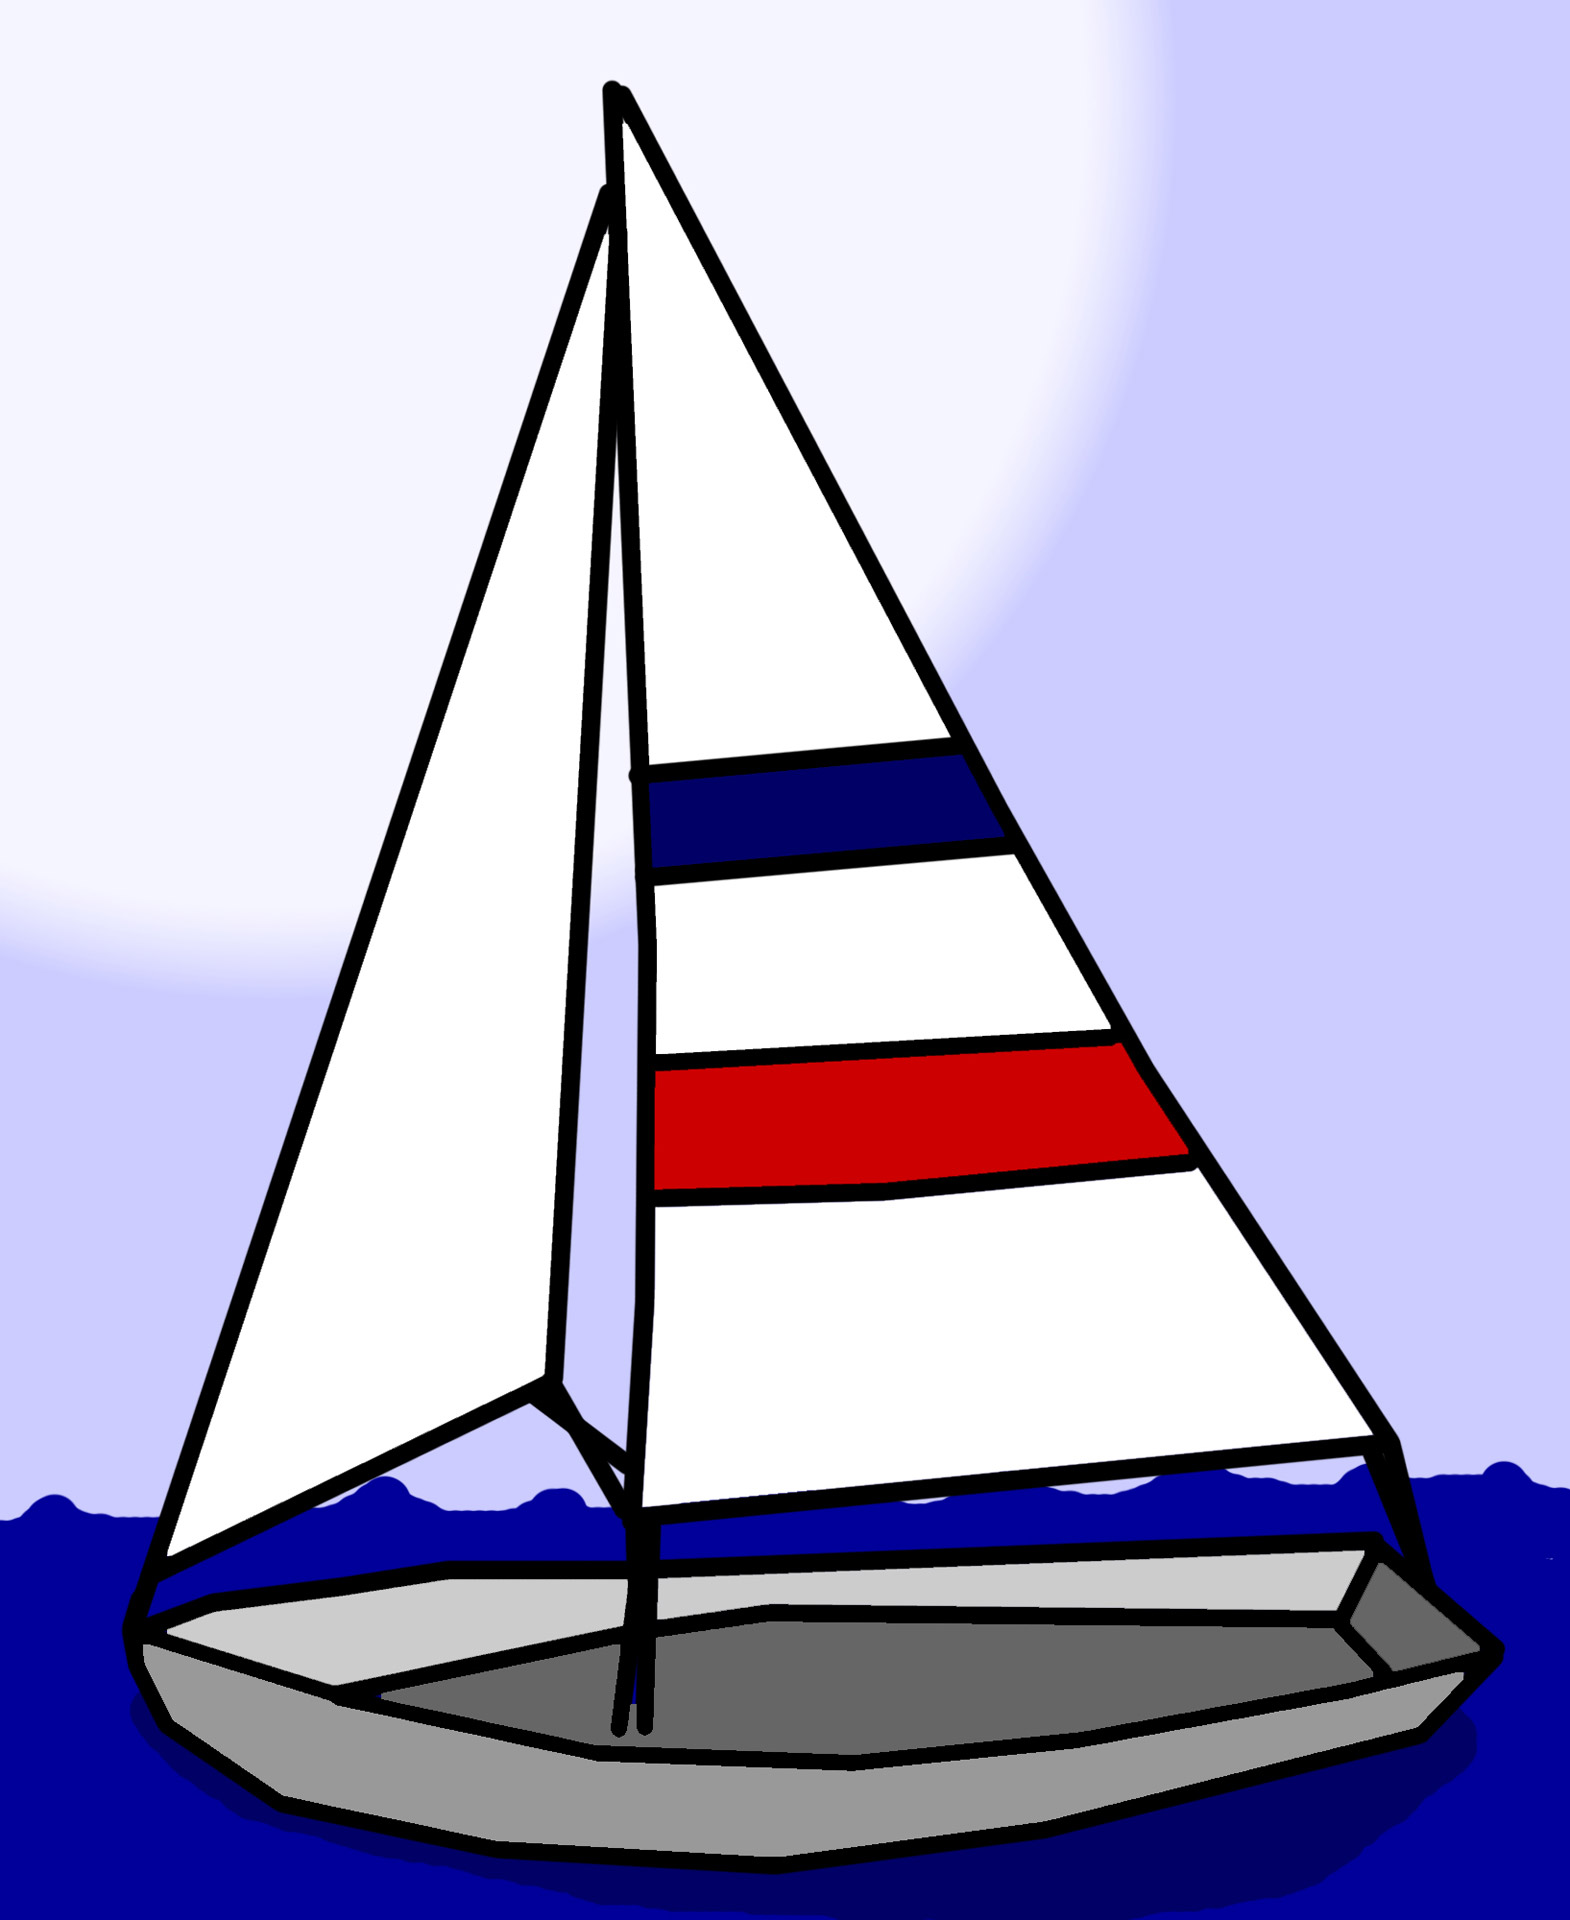 Sailboat Clip Art Free Stock .-Sailboat Clip Art Free Stock .-10